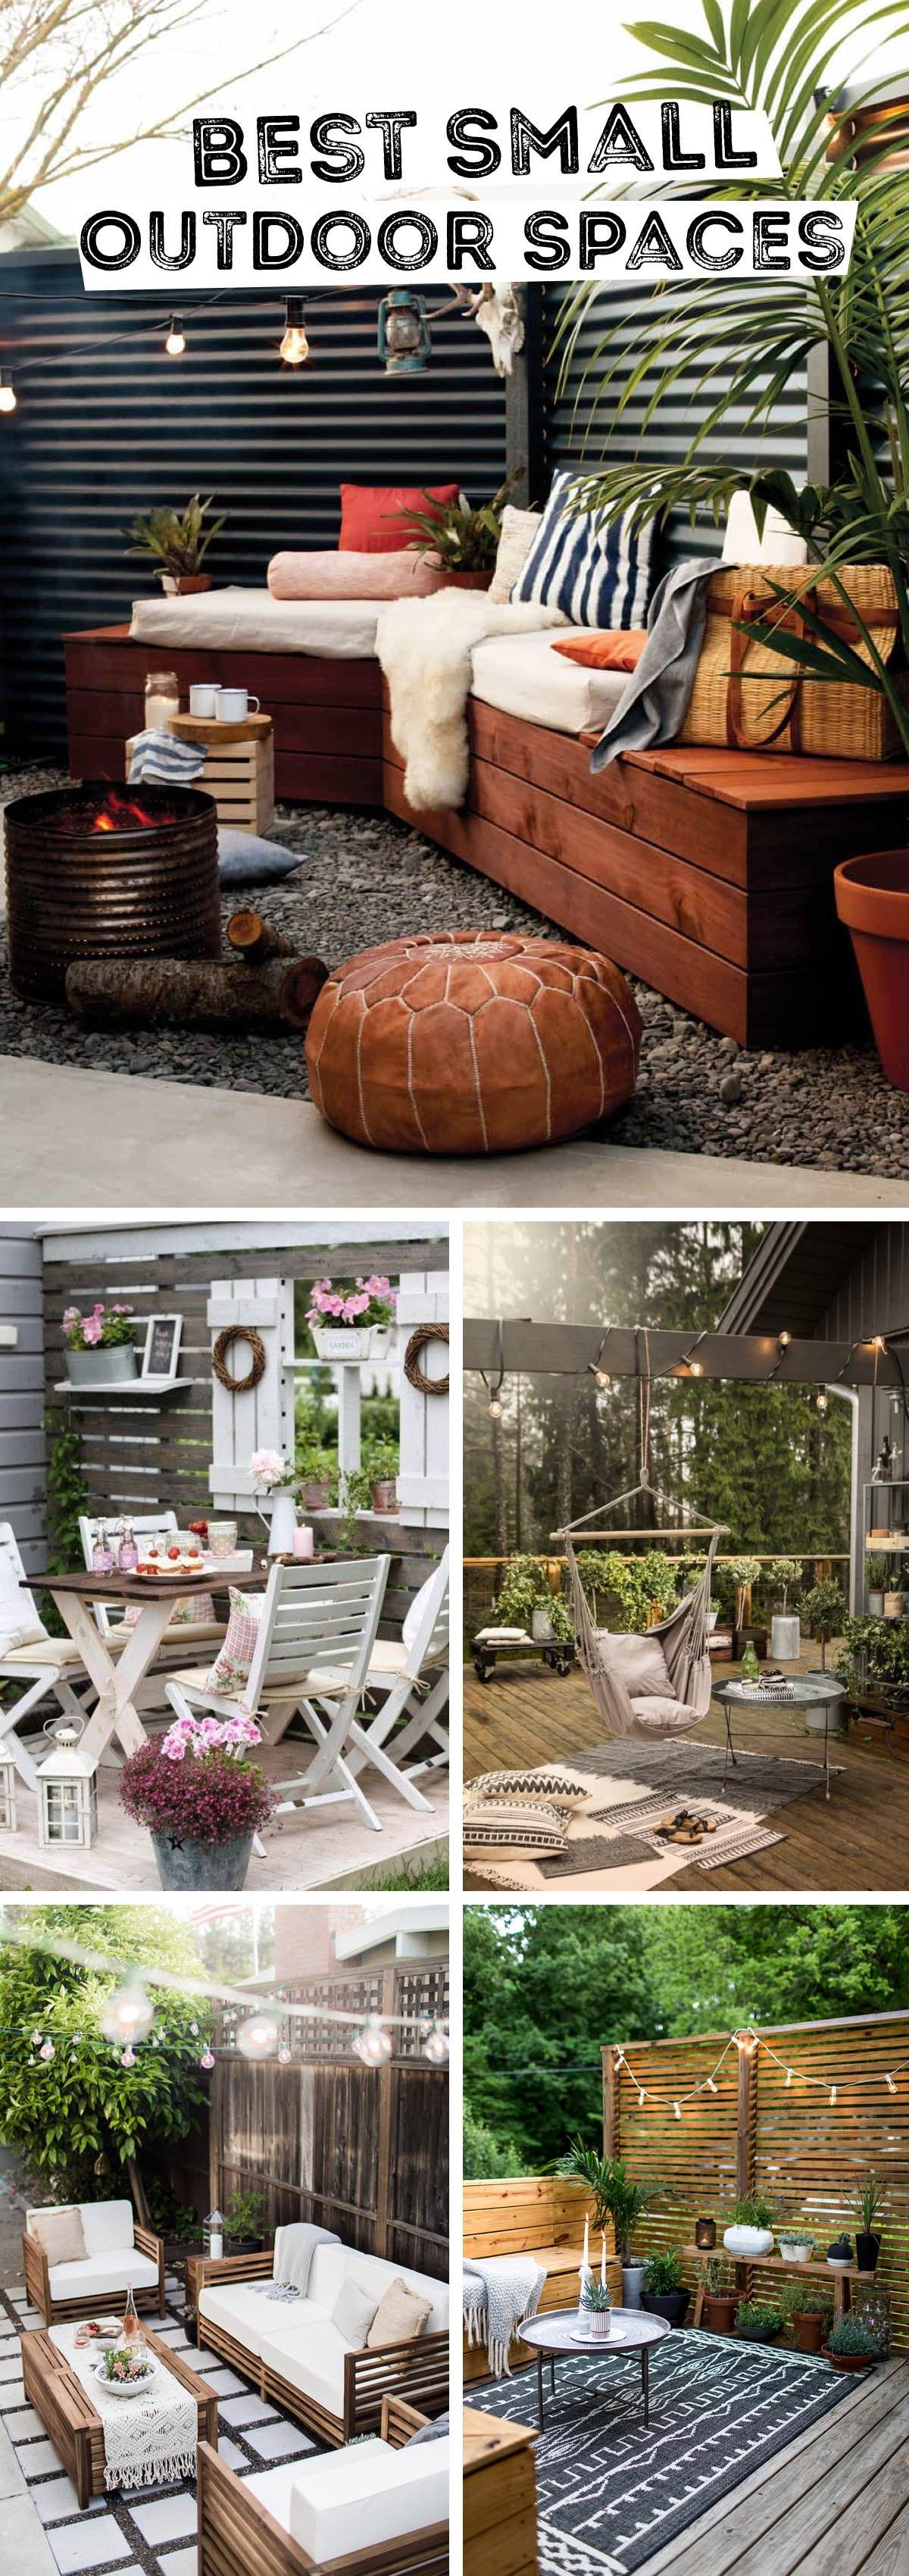 14 Brilliant Small Outdoor Space Design Ideas That Will Totally Awe Inspire You Small Outdoor Spaces Outdoor Patio Decor Small Outdoor Patios